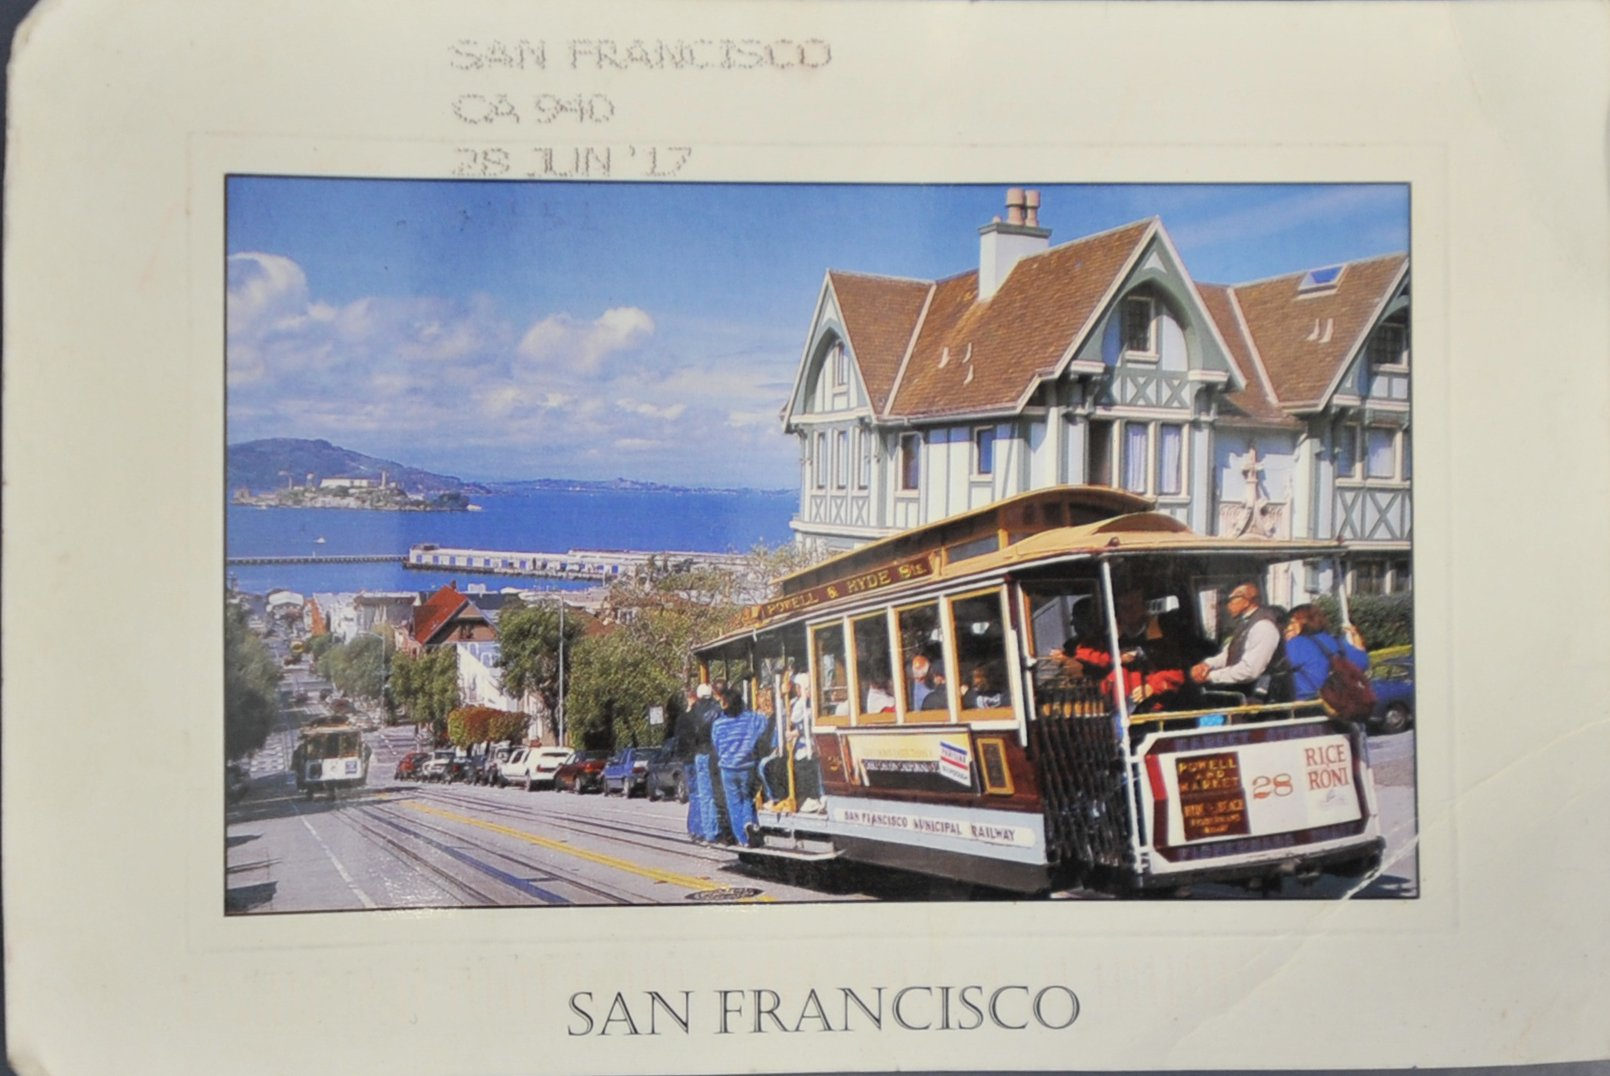 Michelle Carruthers brought in this postcard of a San Francisco cable car which looks eerily like...